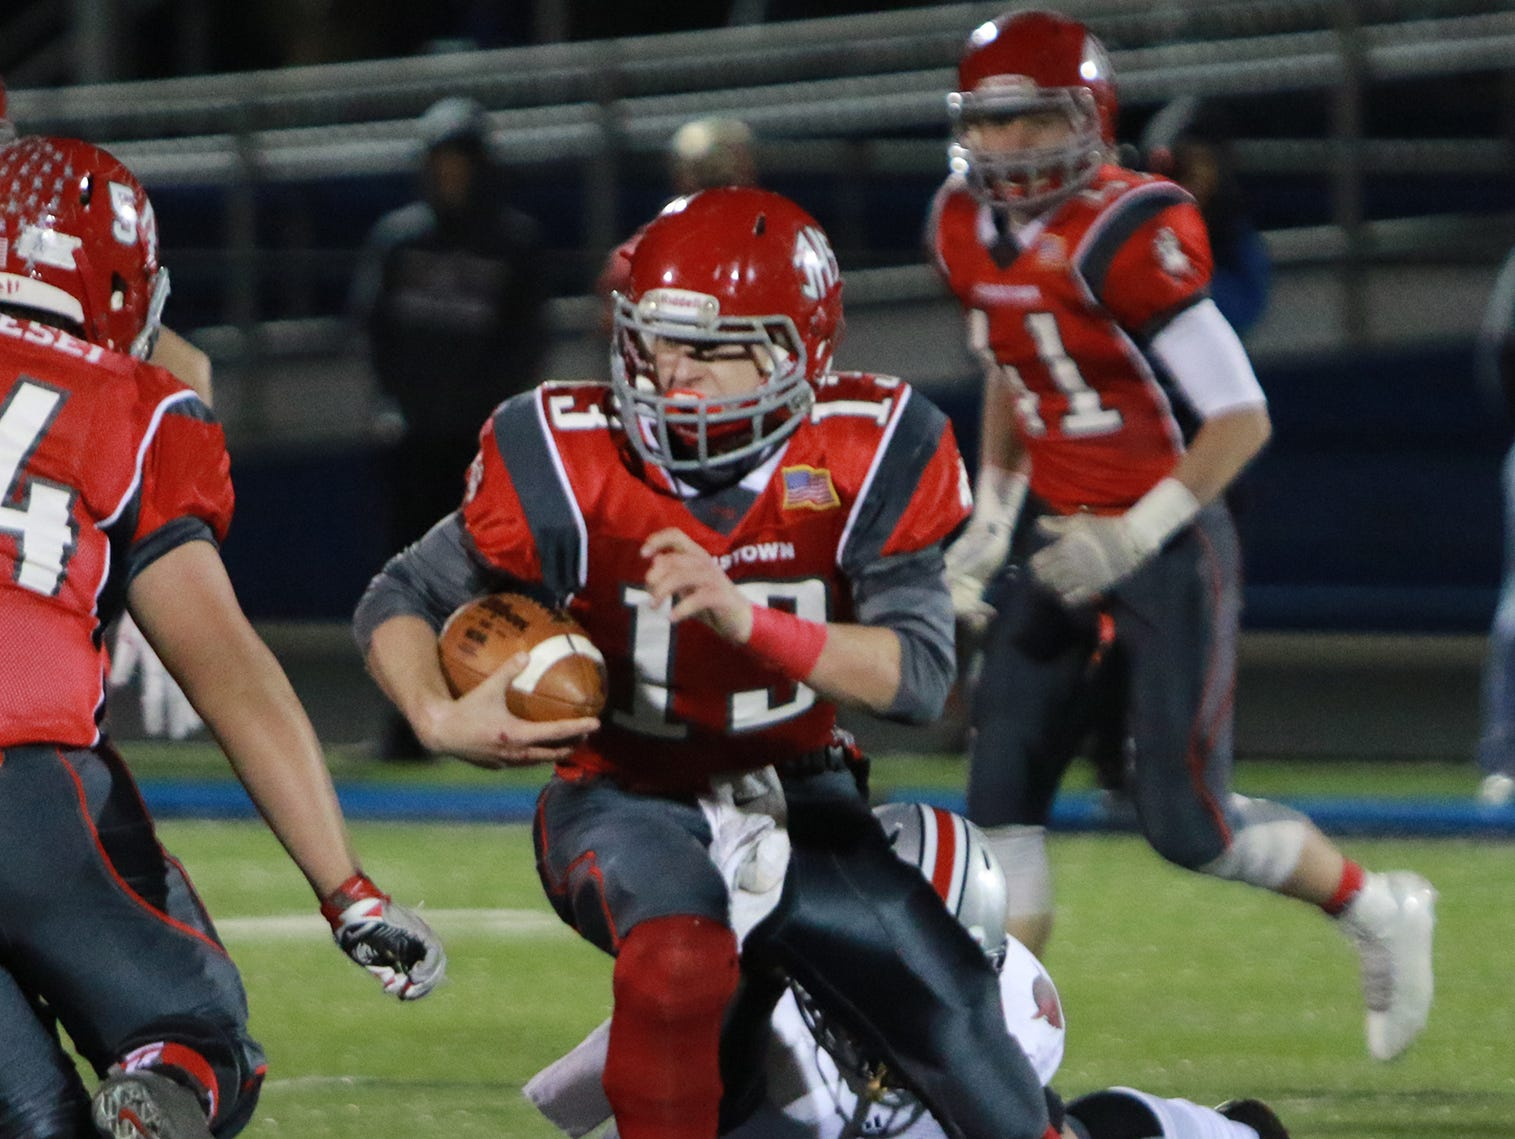 Cody Workman runs the ball down the field avoiding the attempted tackles of St. Clairsville to score the first touchdown of the game.